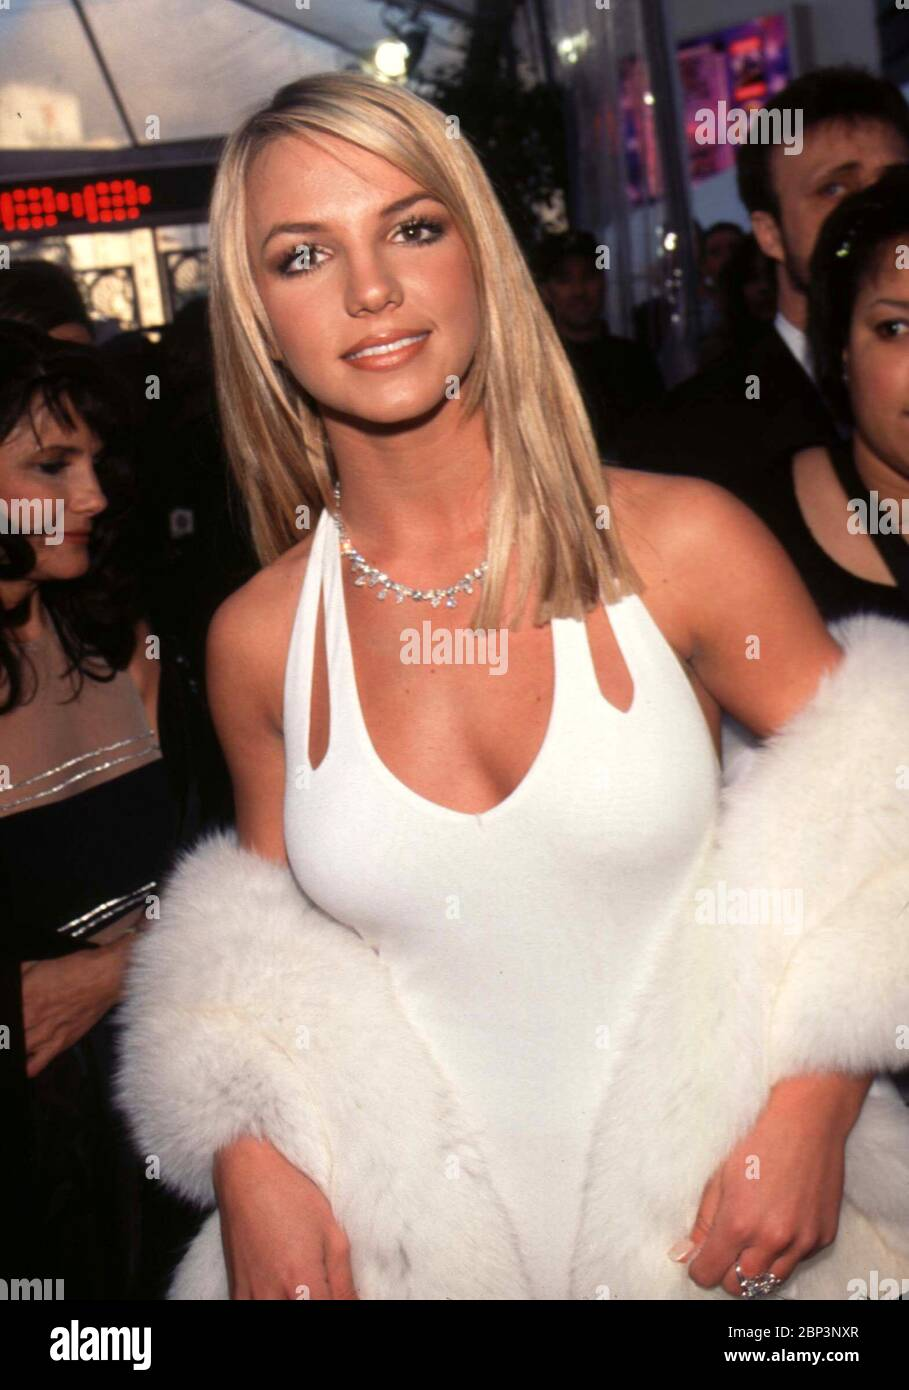 Britney Spears Oops I Did It Again High Resolution Stock Photography And Images Alamy